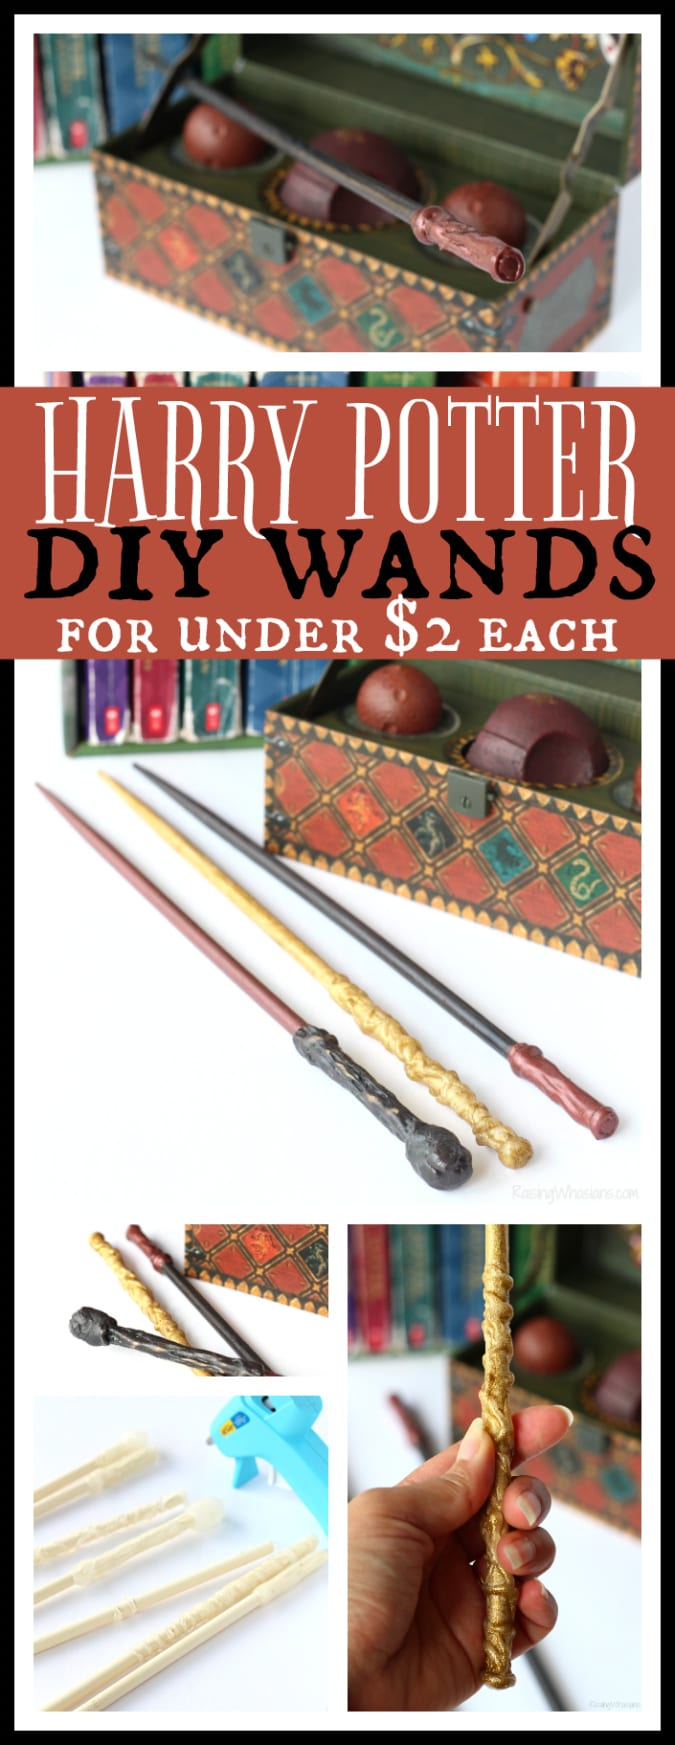 Harry potter diy wands pinterest